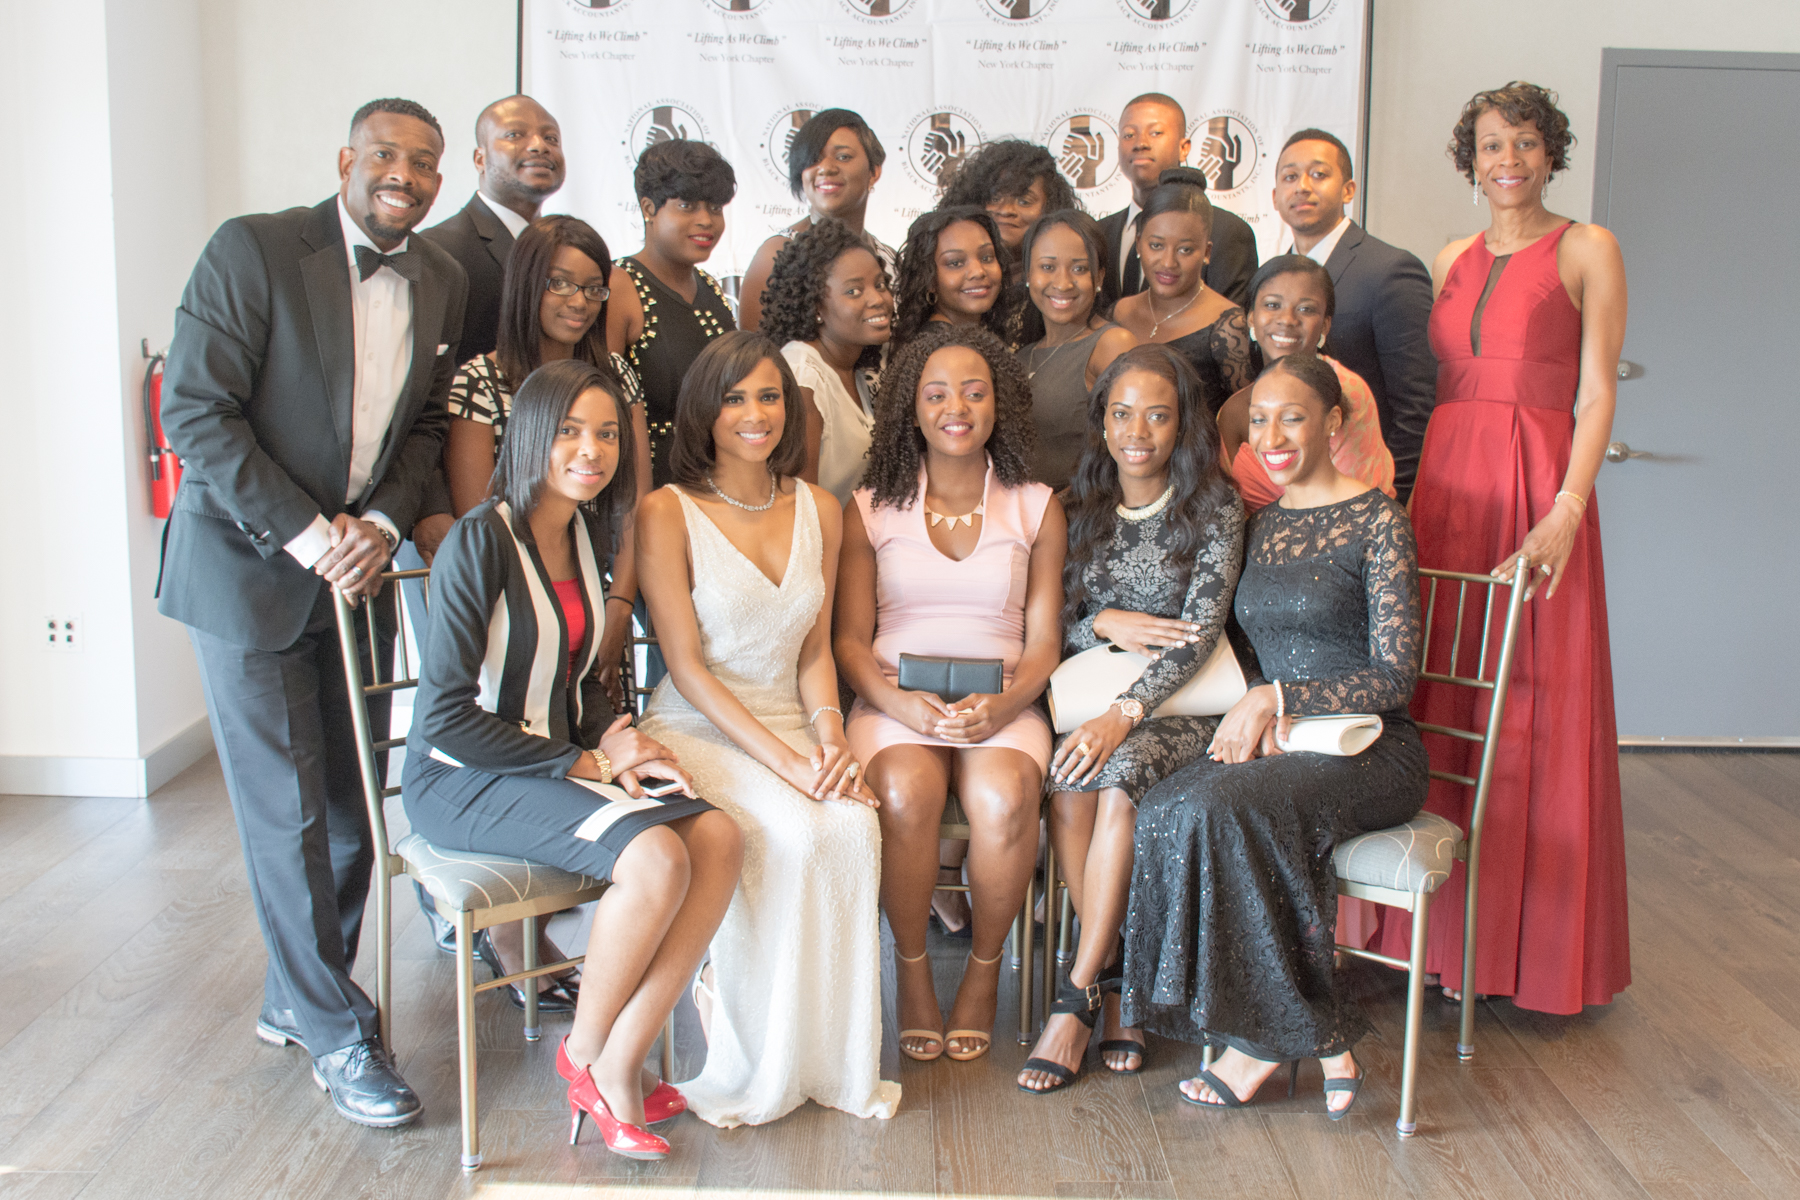 36th annual scholarship and awards gala